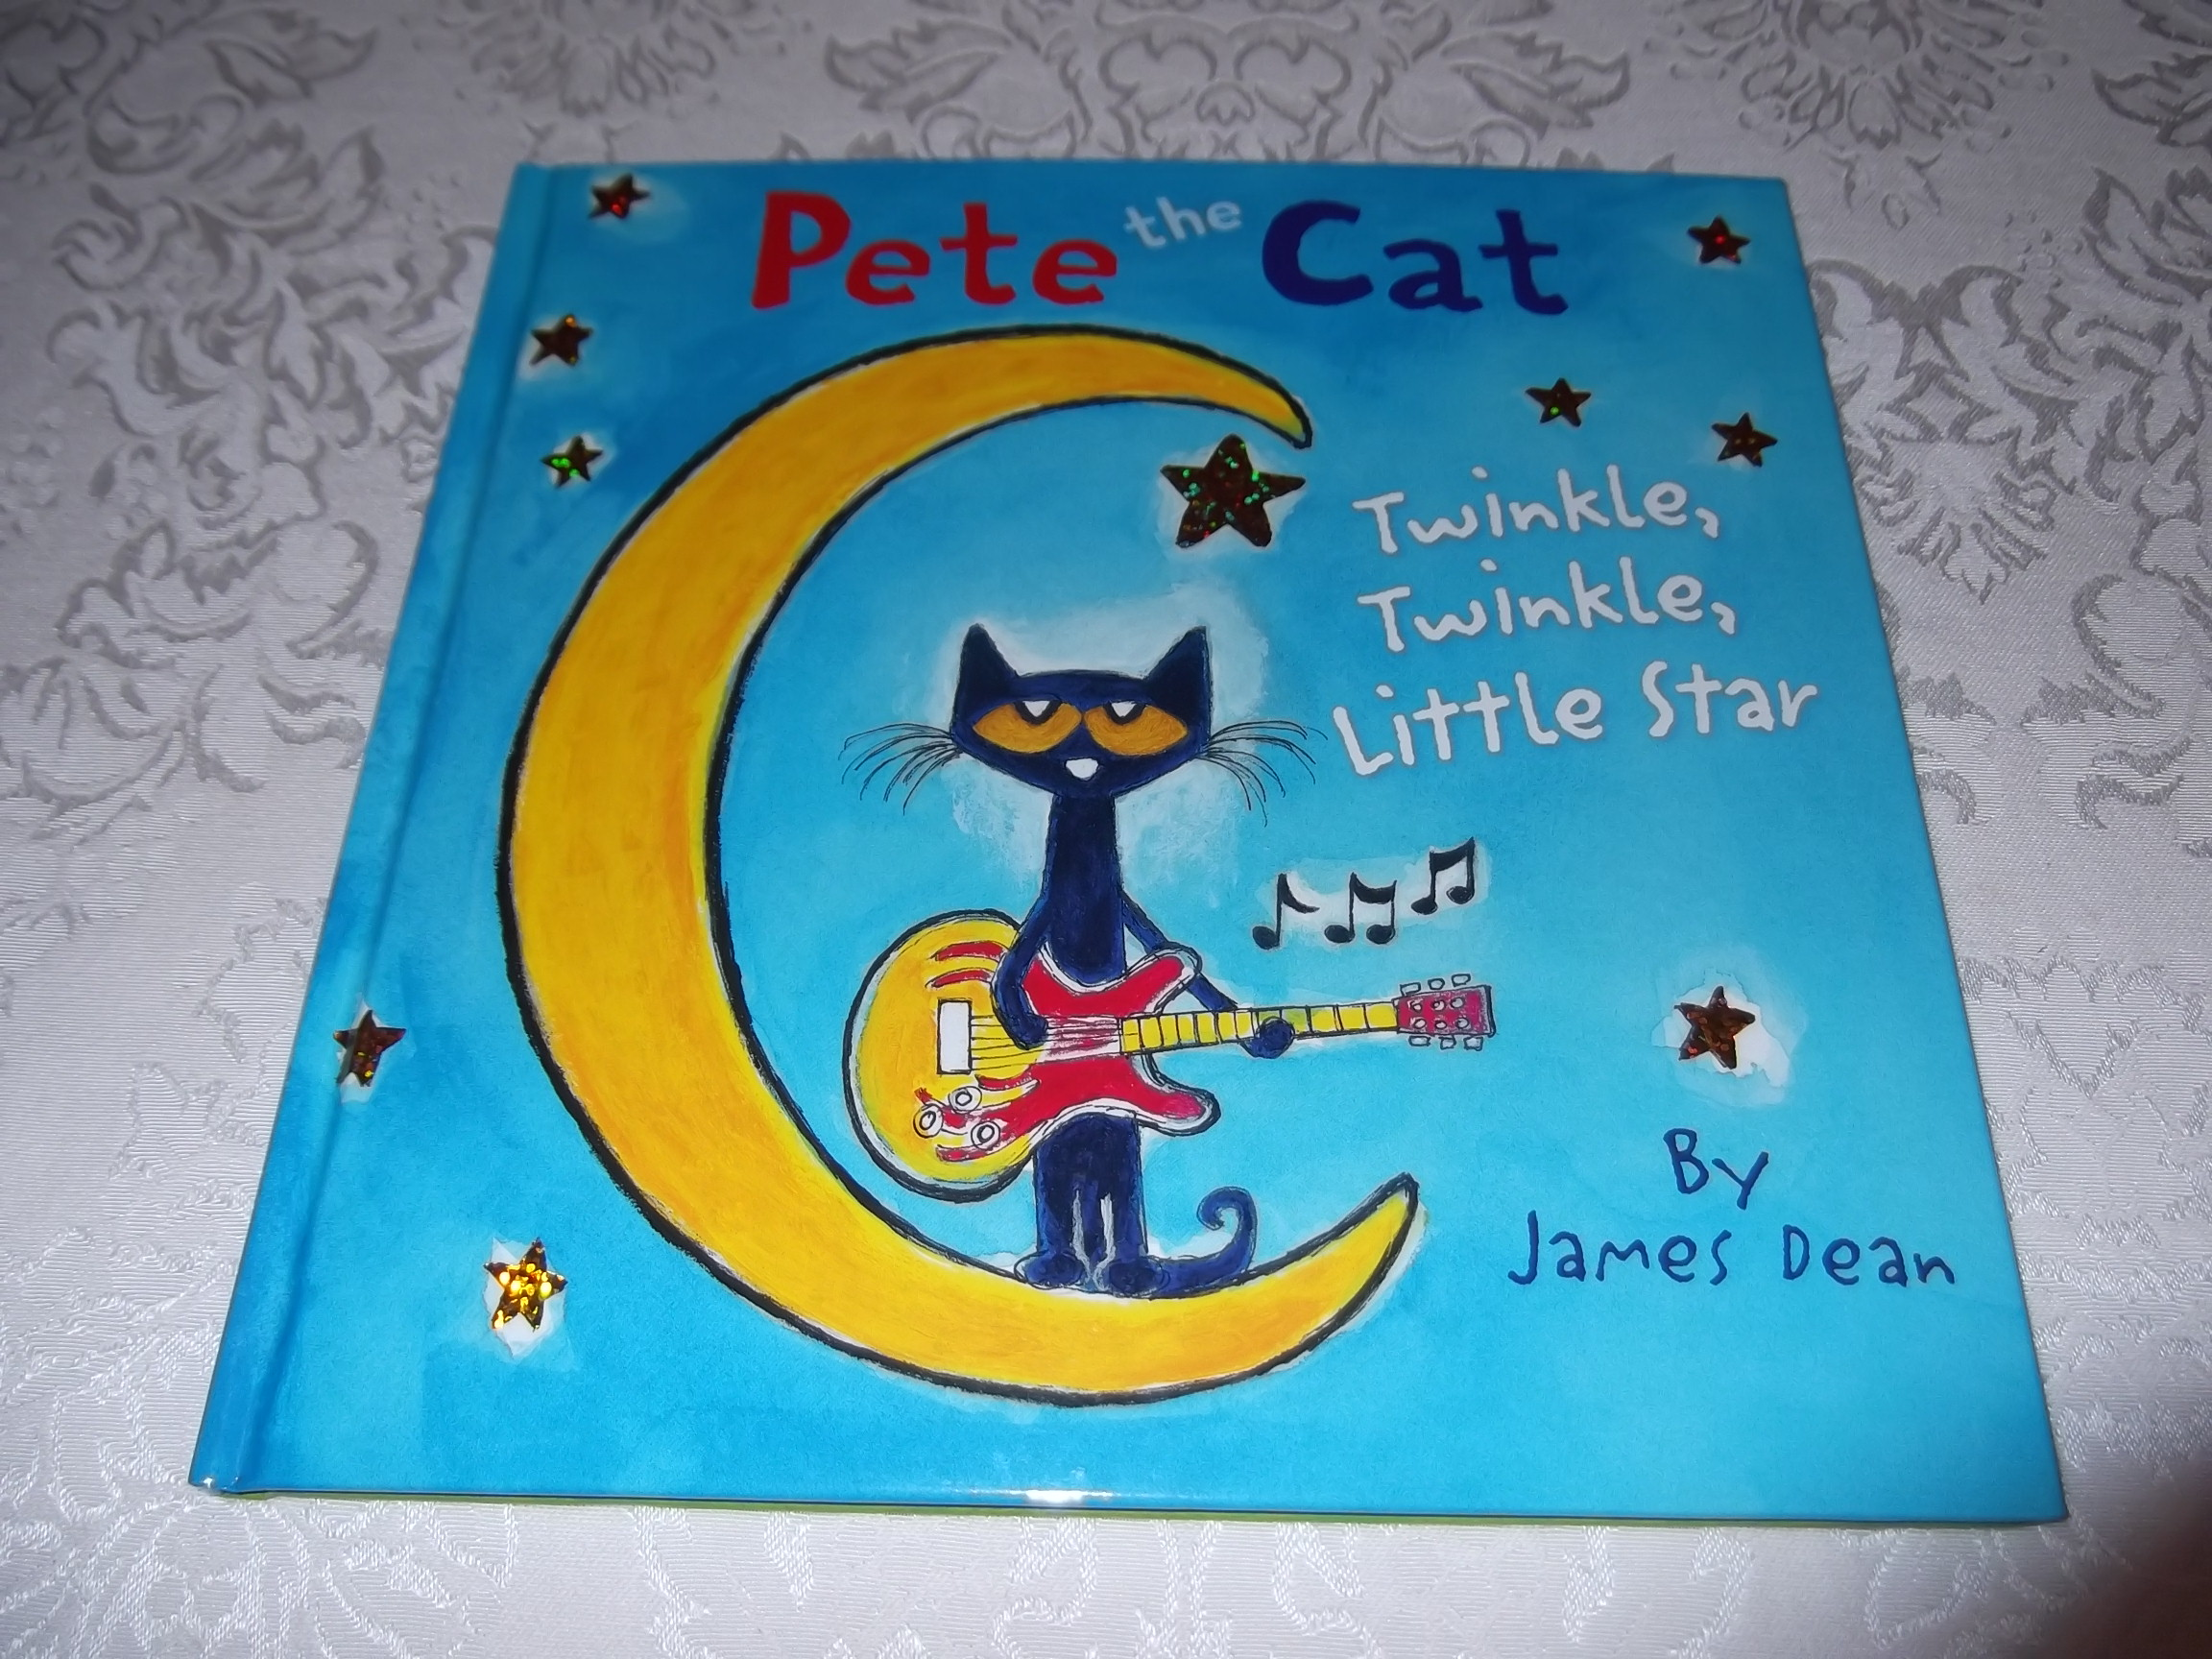 Pete the Cat Twinkle, Twinkle, Little Star by James Dean